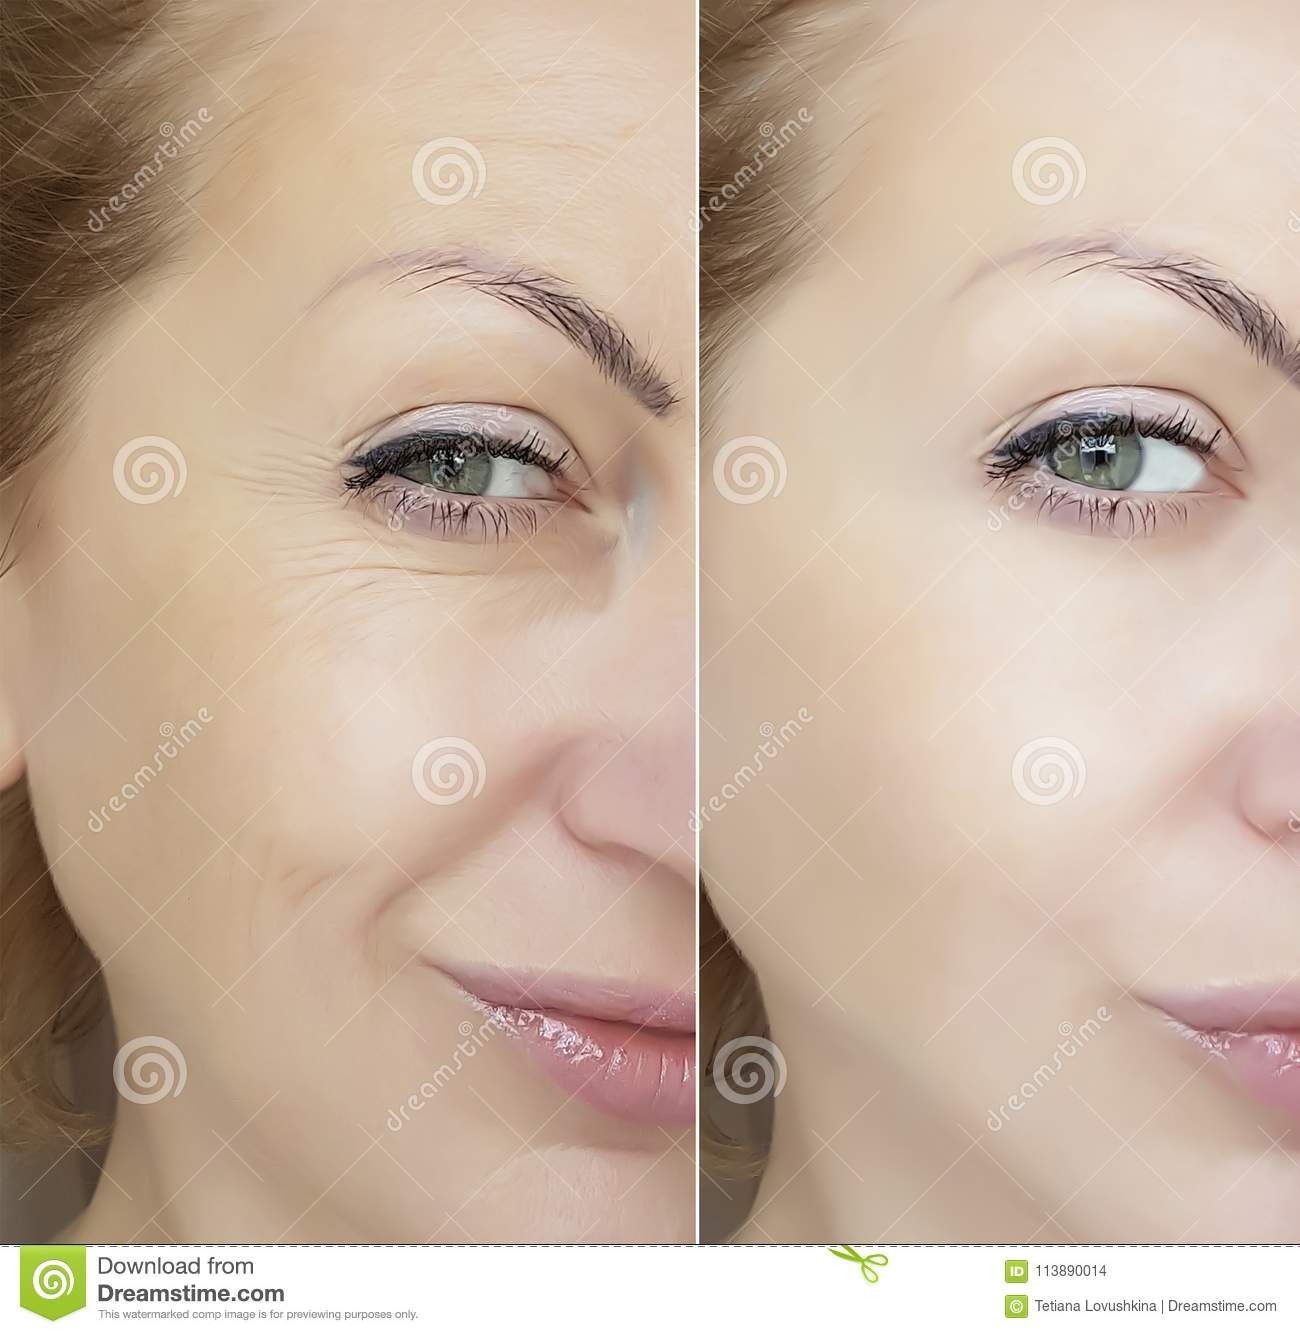 Face woman wrinkles eyes contrast regeneration before and after